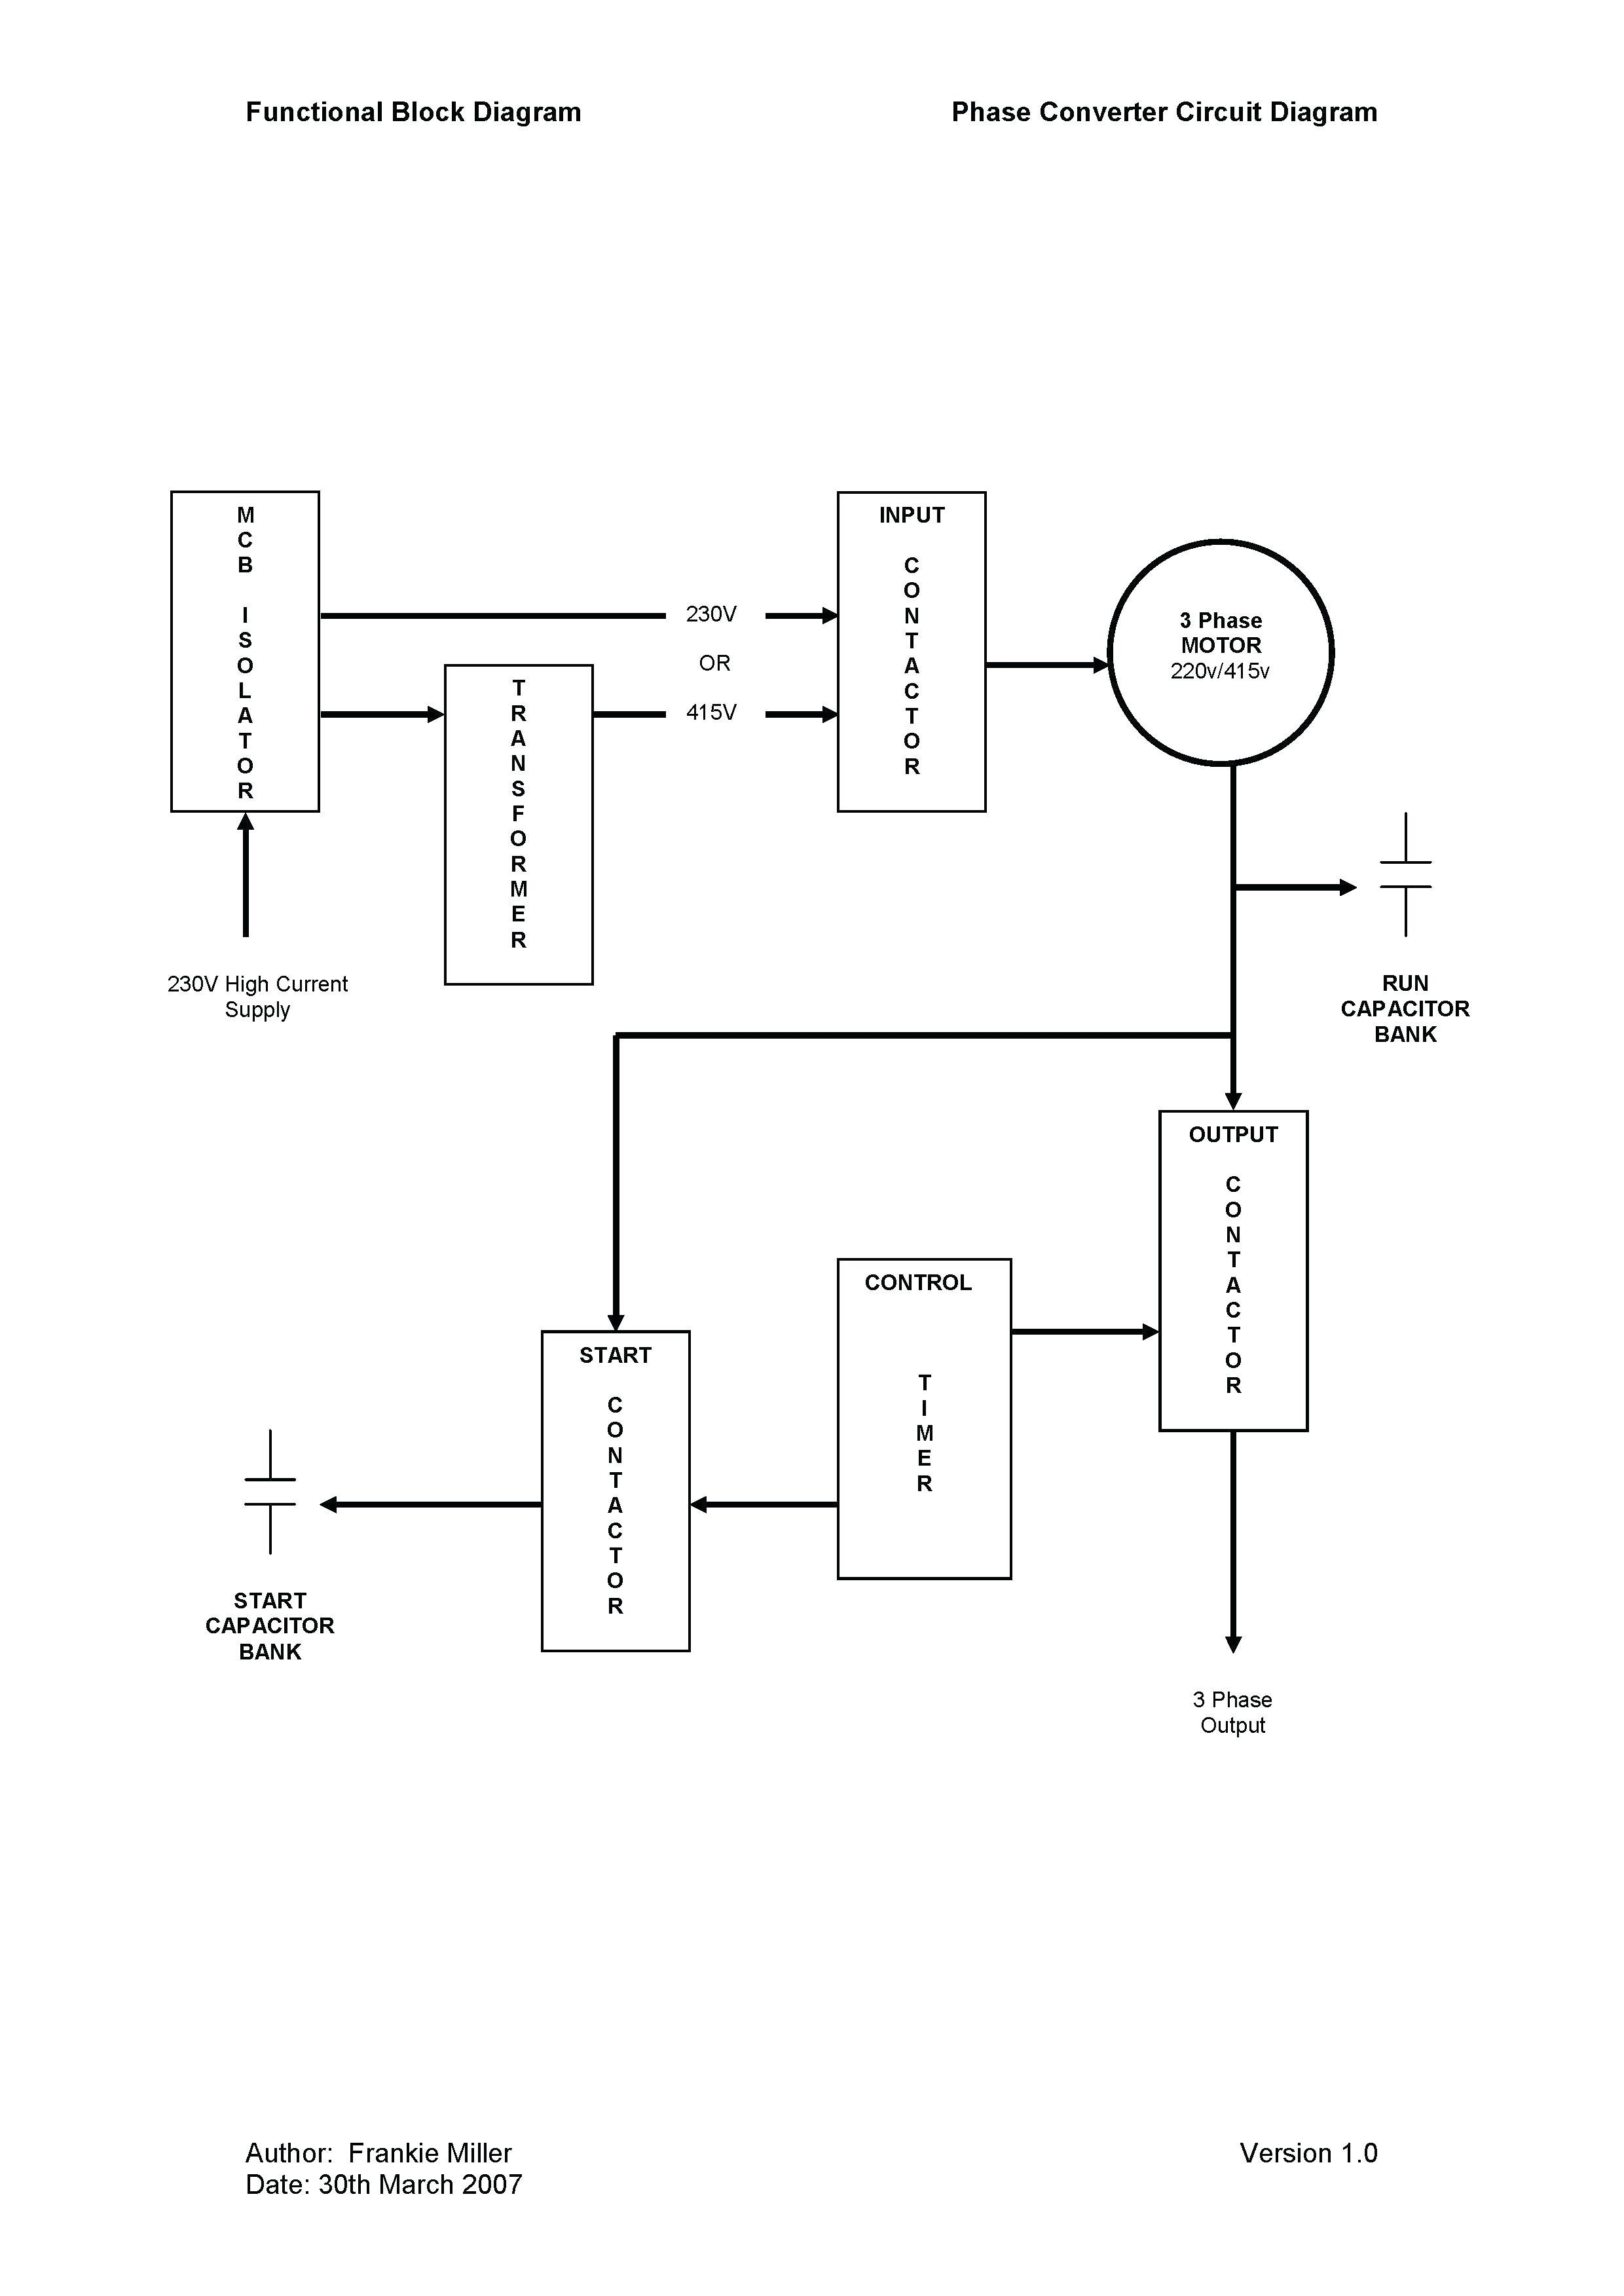 Ronk Phase Converter Wiring Diagram Rotary Switch Main Related Post